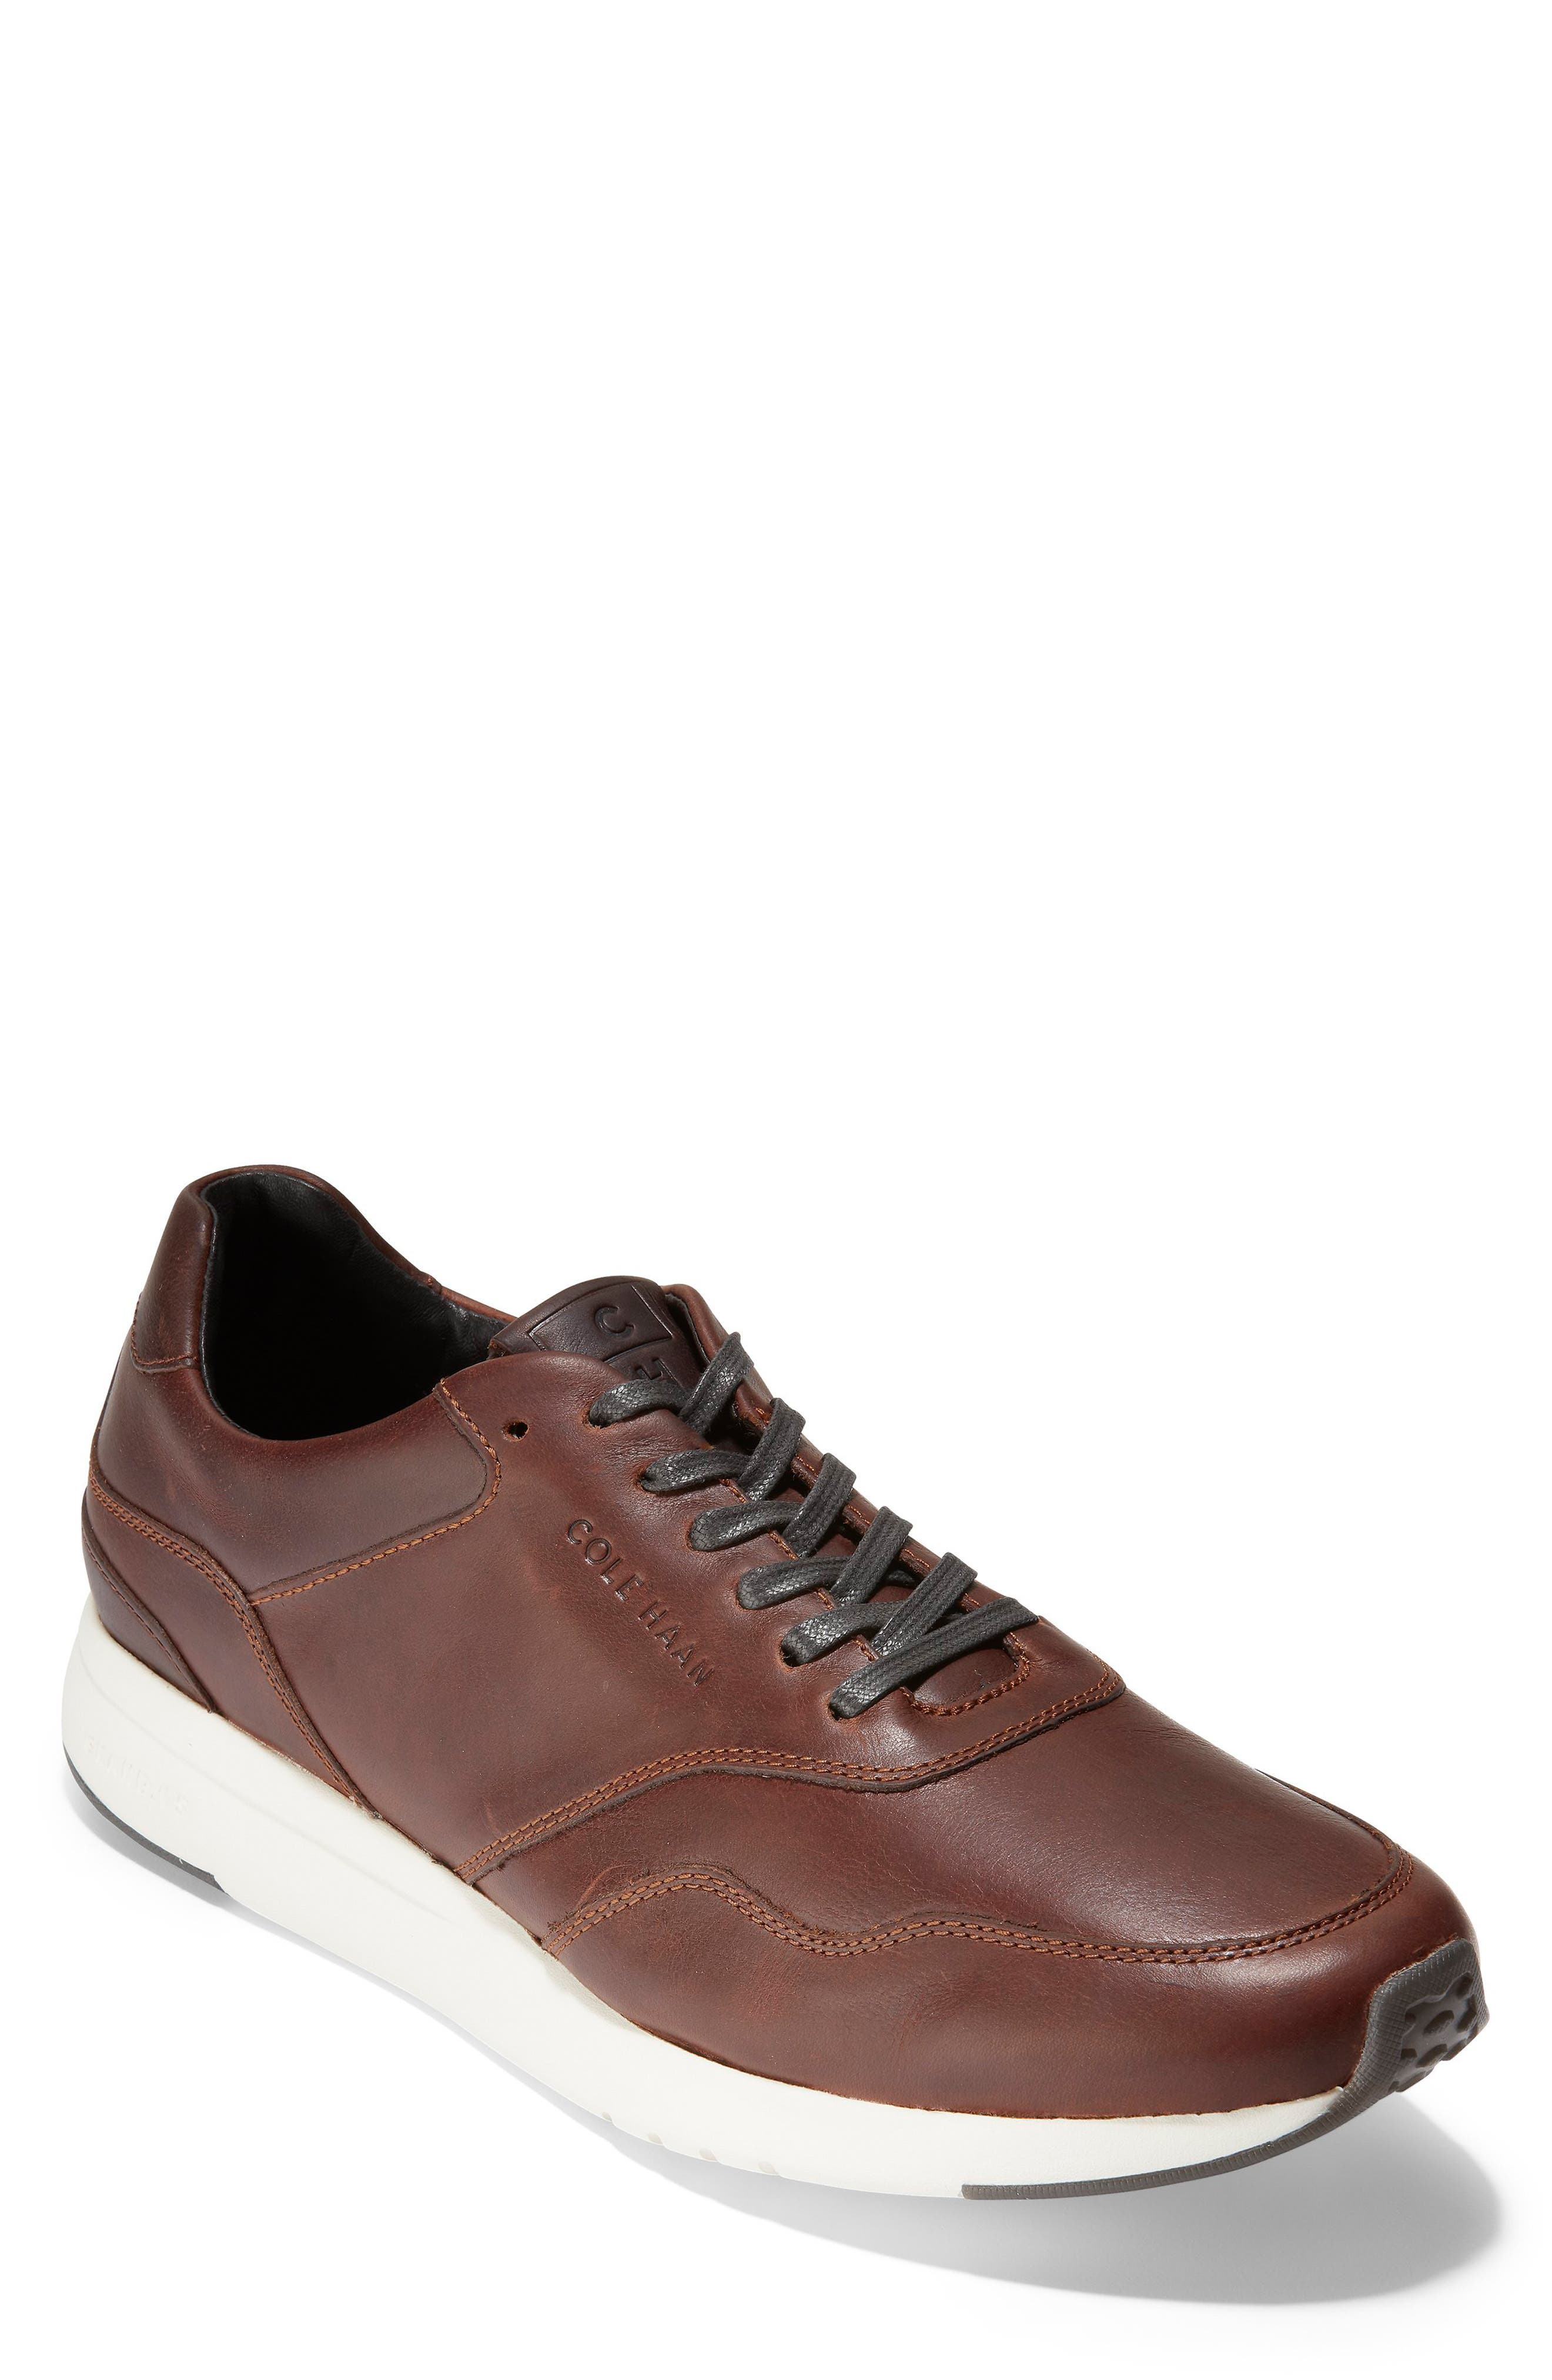 GrandPro Sneaker,                             Main thumbnail 1, color,                             MESQUITE/ COFFEE LEATHER